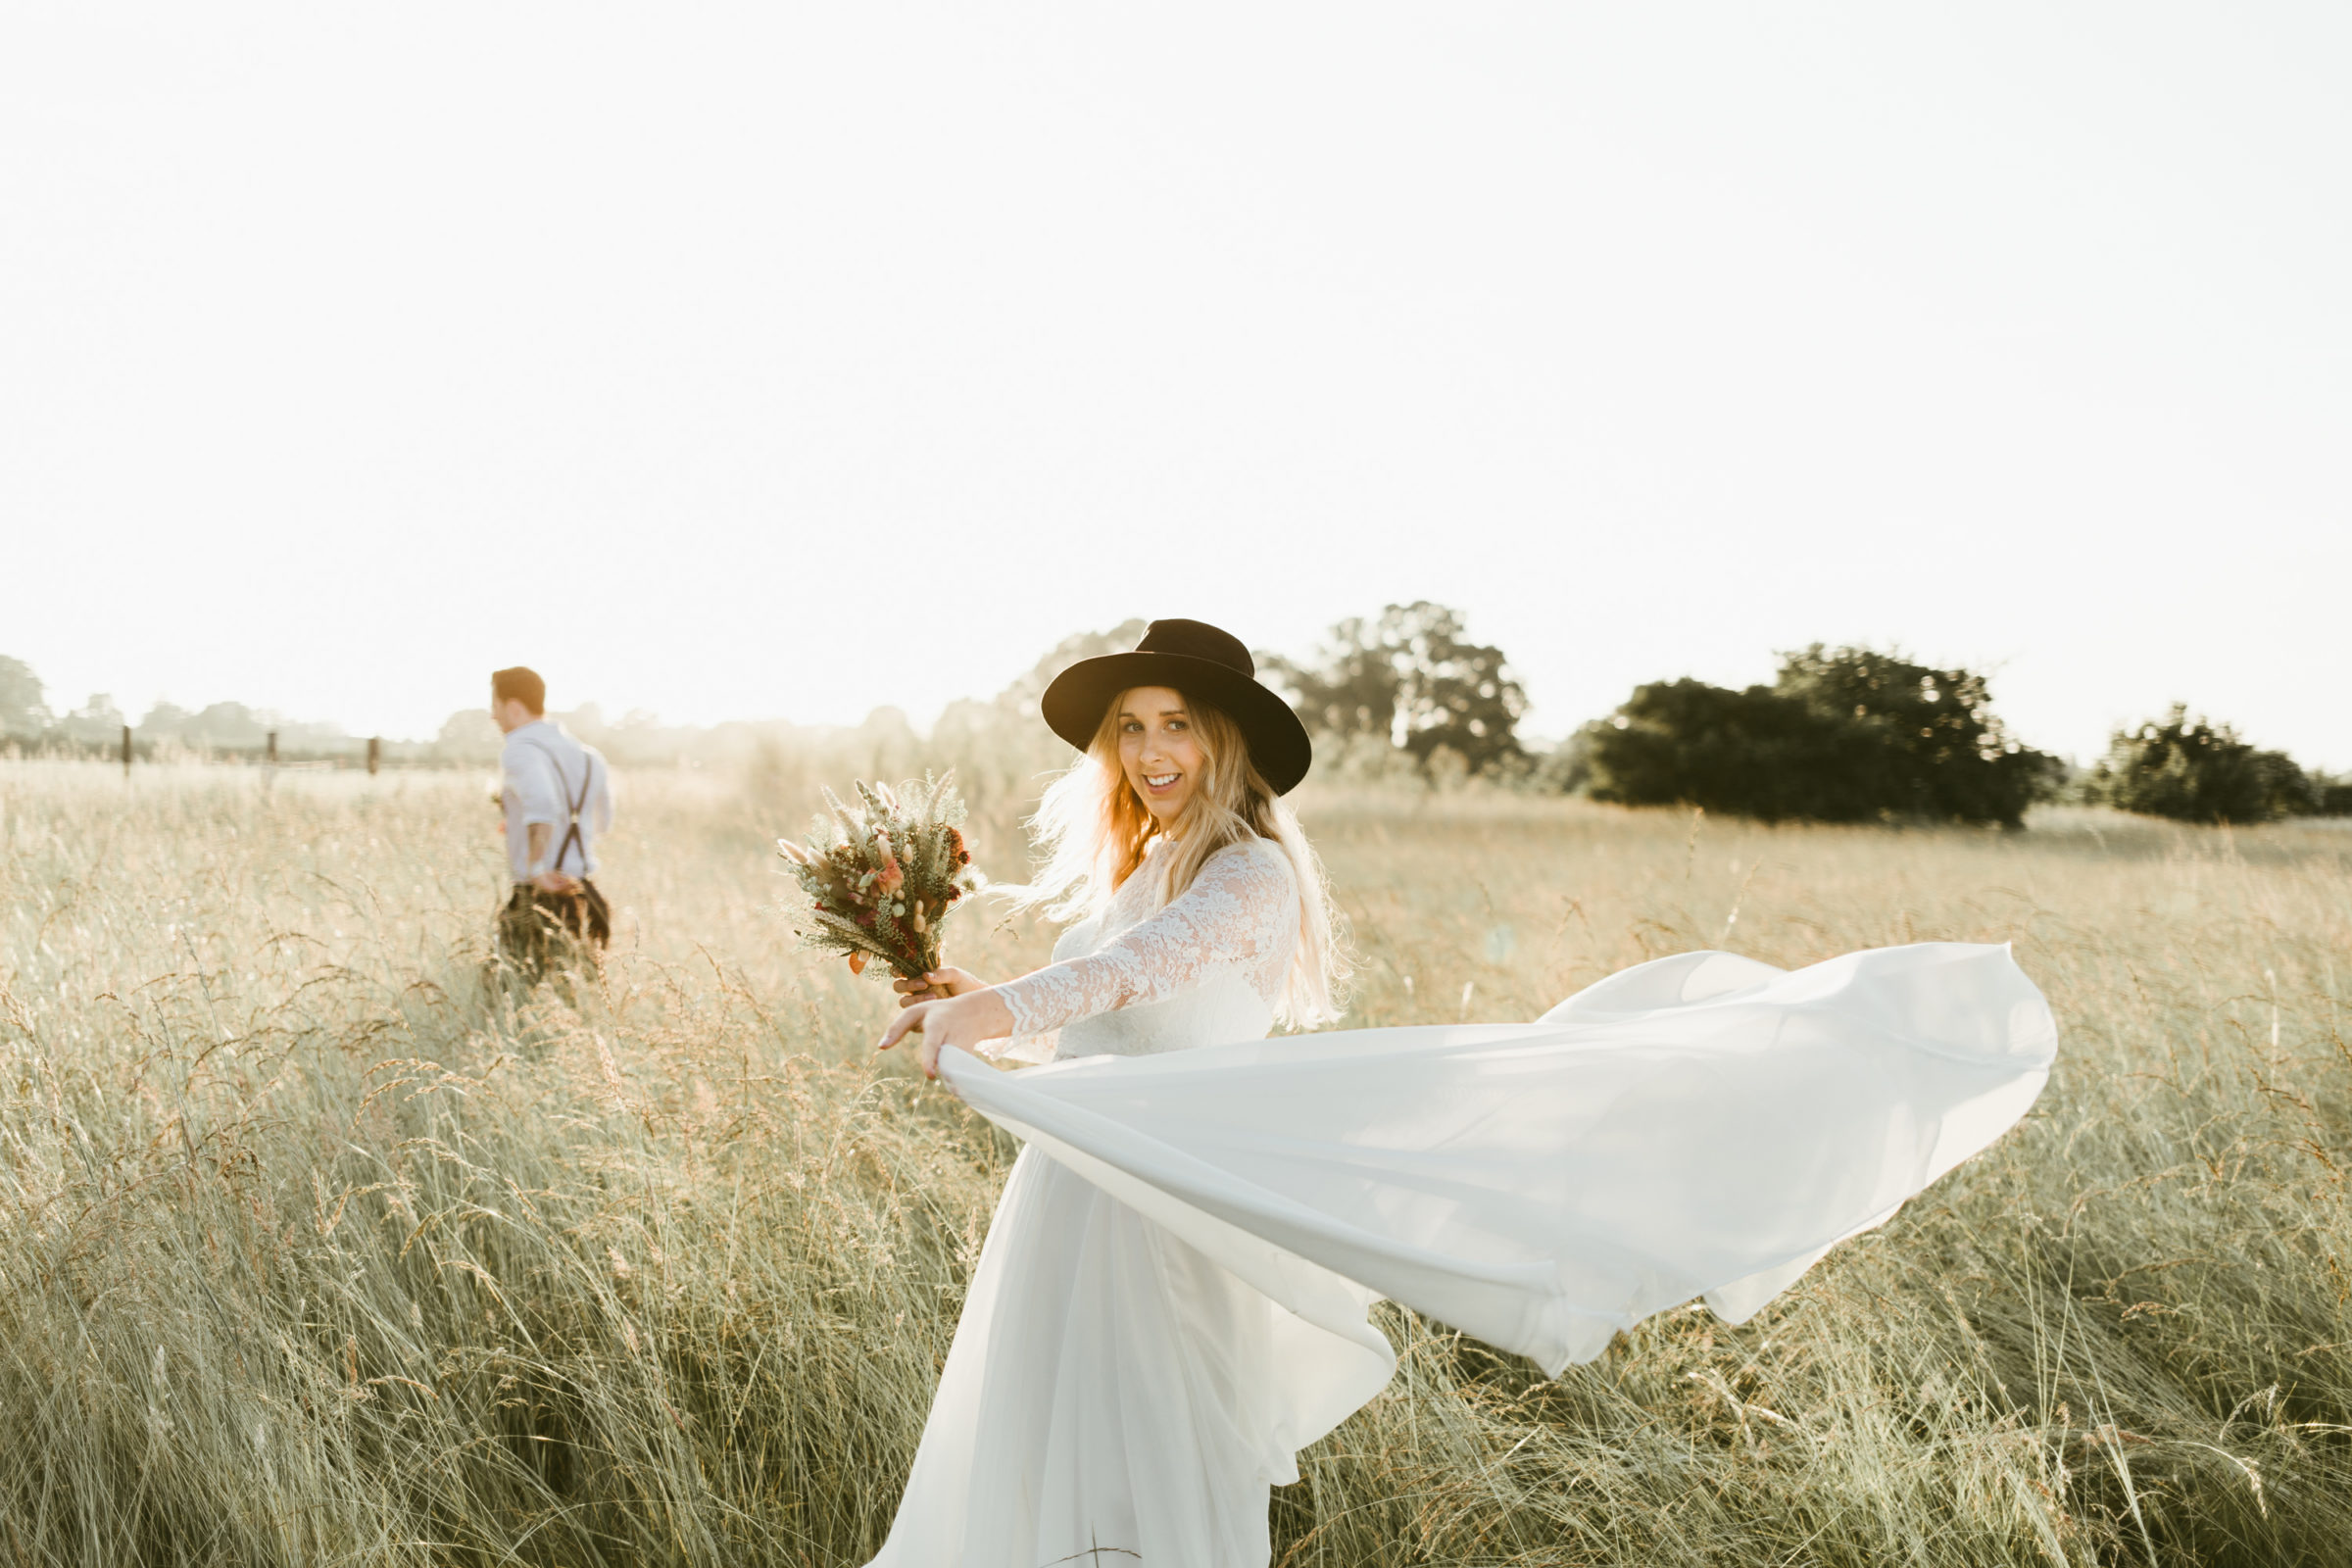 Boho Bride Styled Shoot – London – June 2018